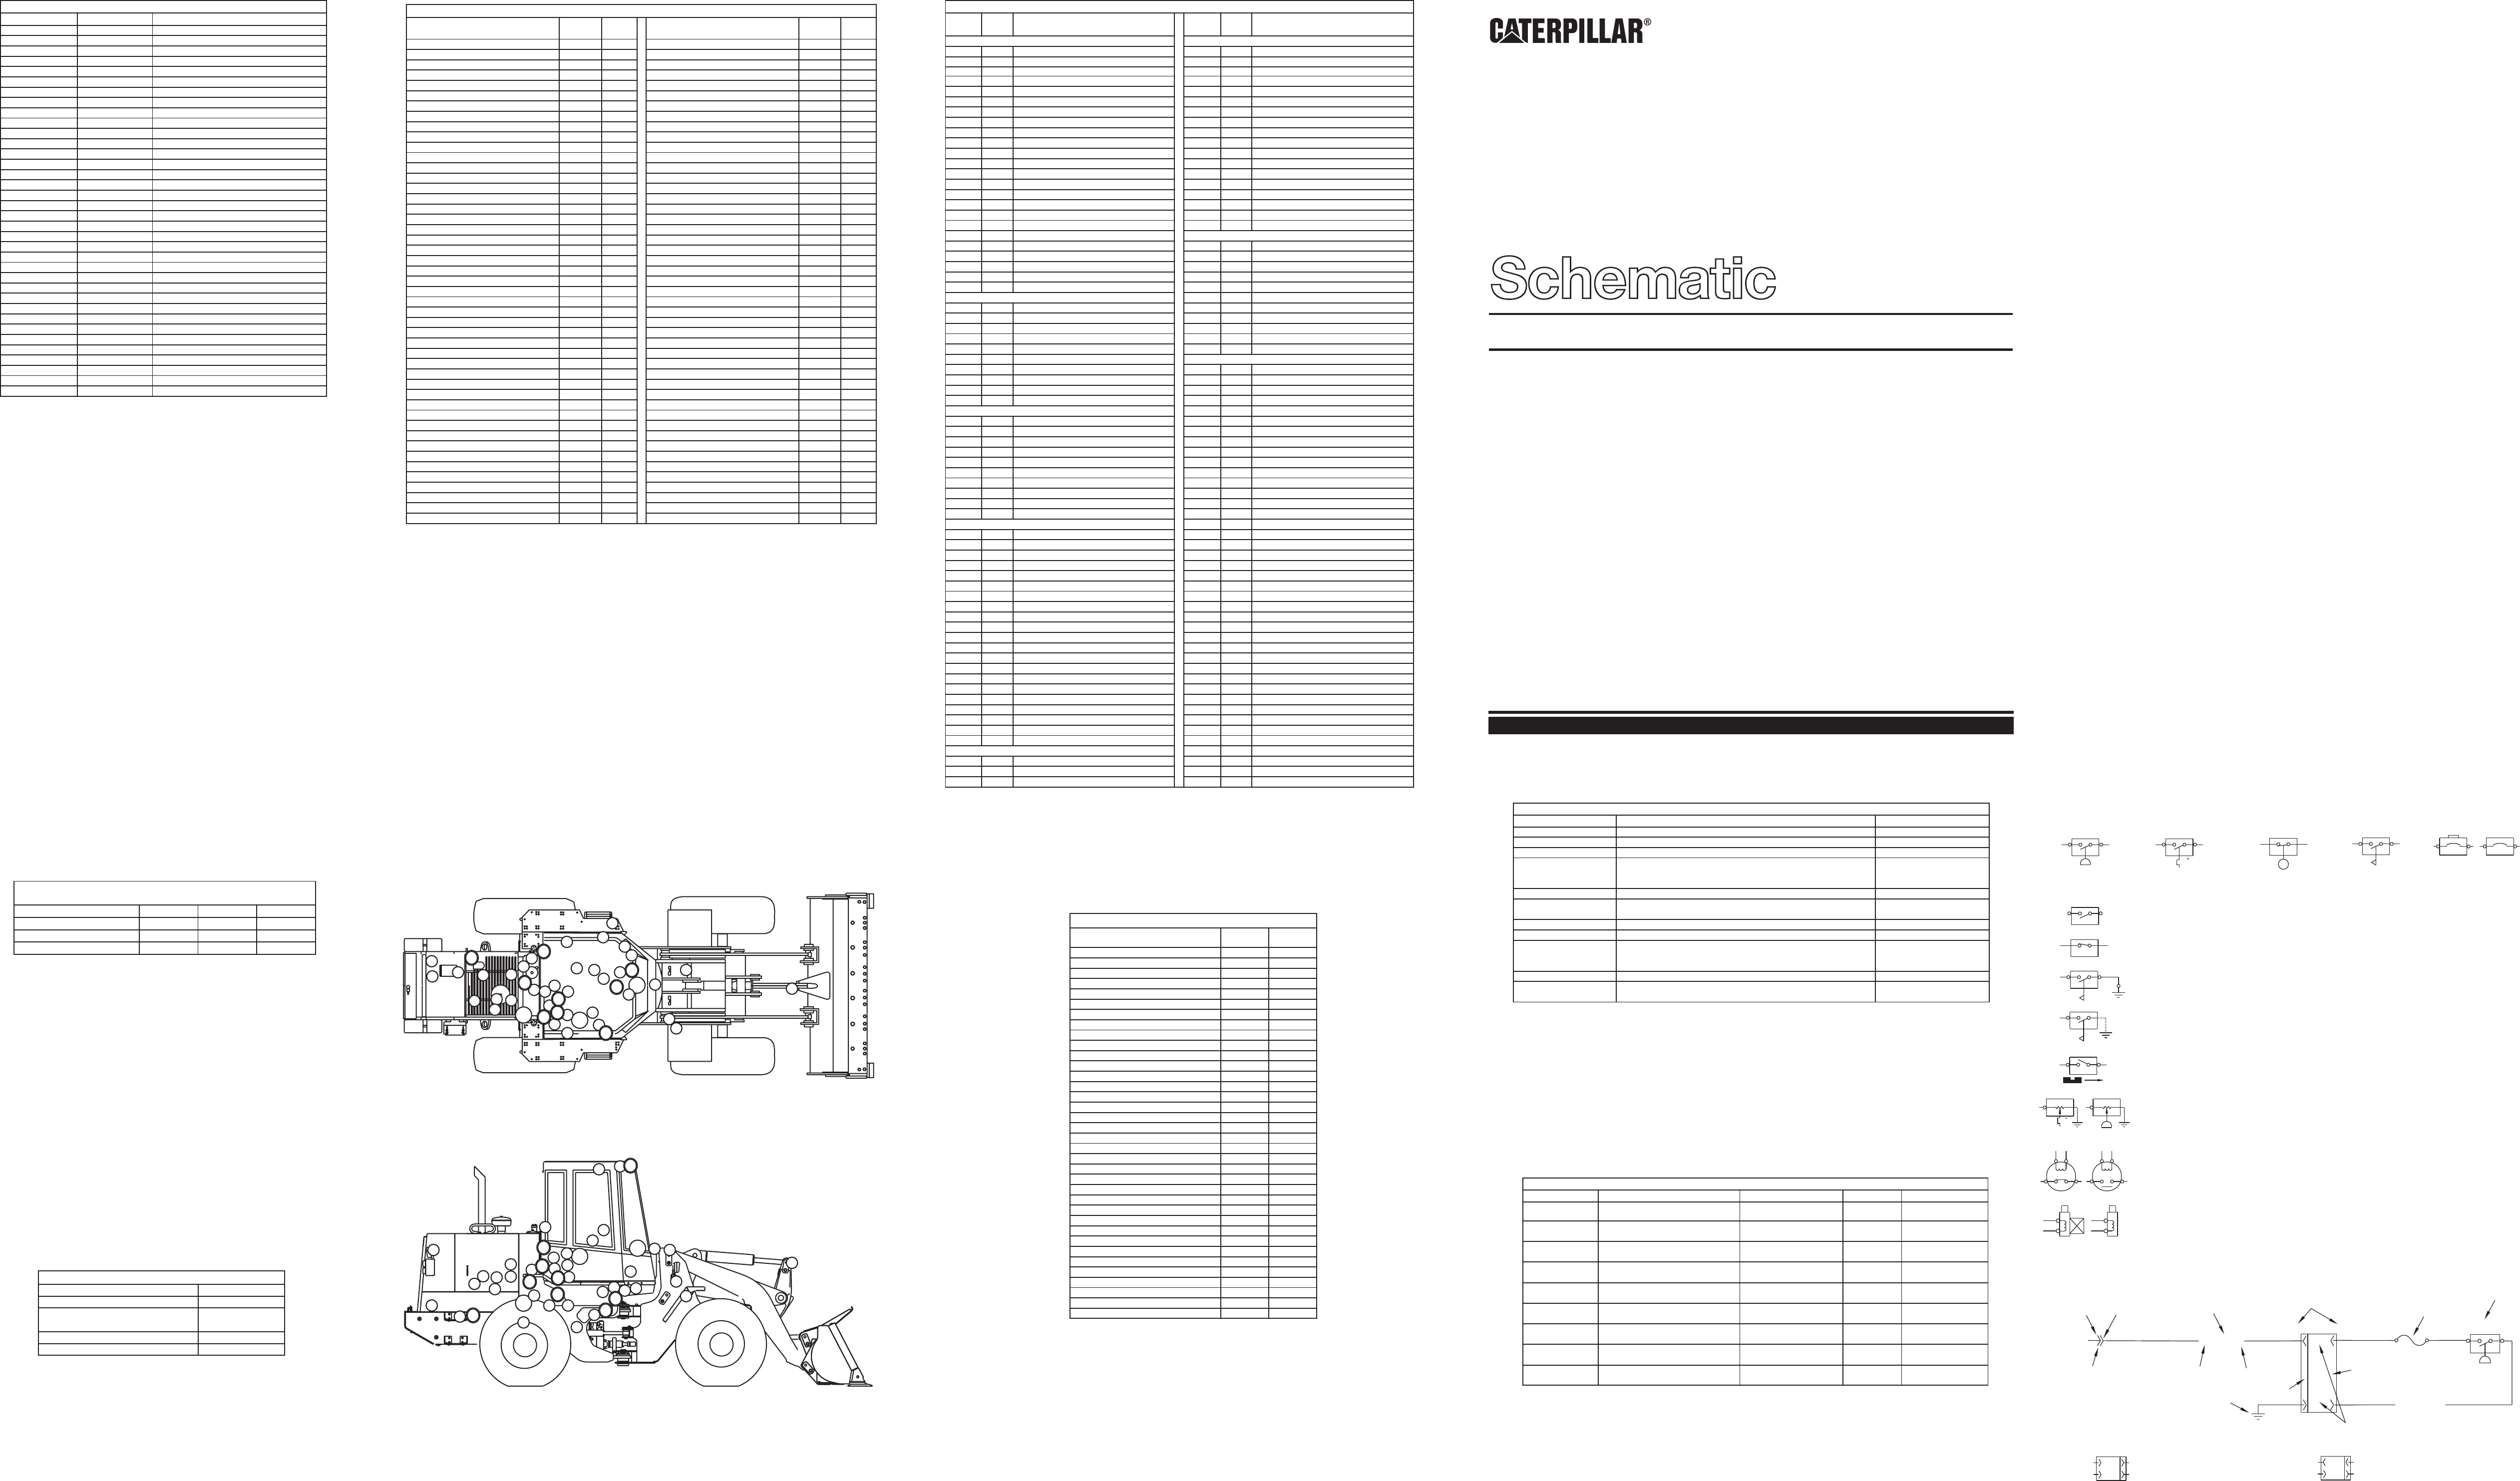 924f Wheel Loader Electrical System Cat Machines Electrical Schematic